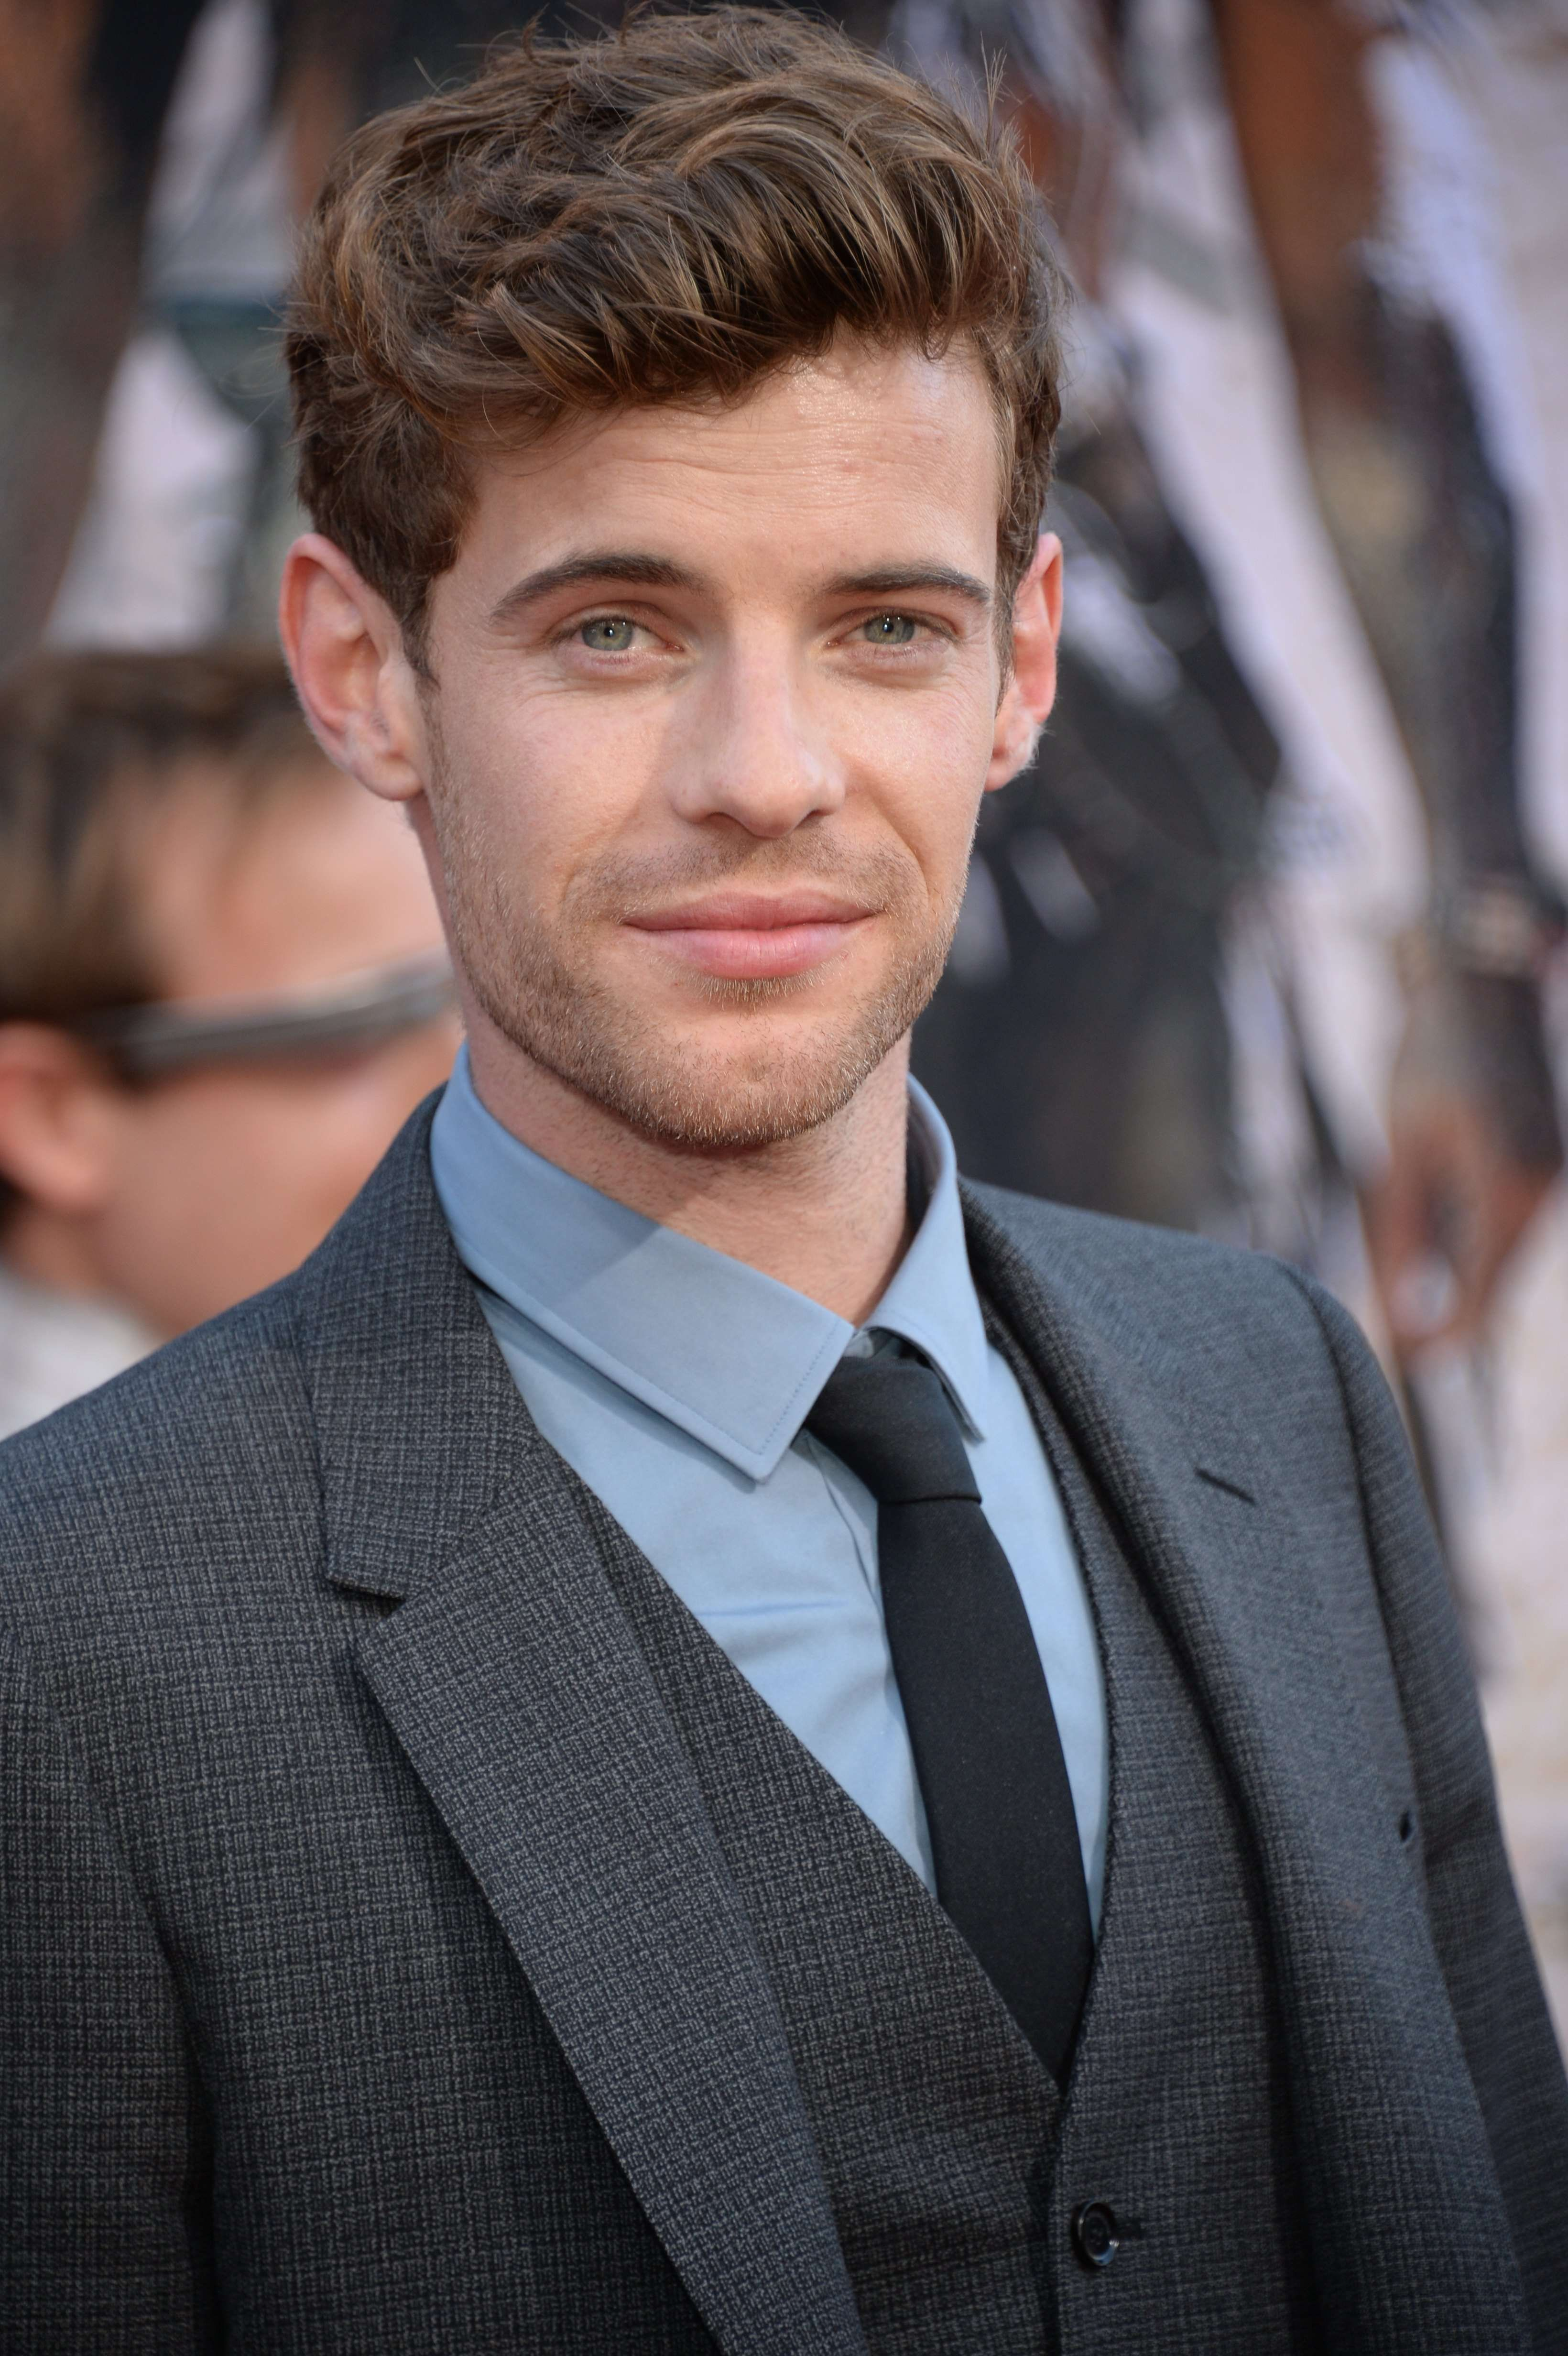 harry treadawayharry treadaway gif, harry treadaway luke, harry treadaway gif hunt, harry treadaway control, harry treadaway instagram, harry treadaway twitter, harry treadaway, harry treadaway imdb, harry treadaway tumblr, harry treadaway height, harry treadaway holliday grainger, harry treadaway penny dreadful, harry treadaway interview, harry treadaway city of ember, harry treadaway wiki, harry treadaway rose leslie, harry treadaway facebook, harry treadaway fan site, harry treadaway 2015, harry treadaway photoshoot